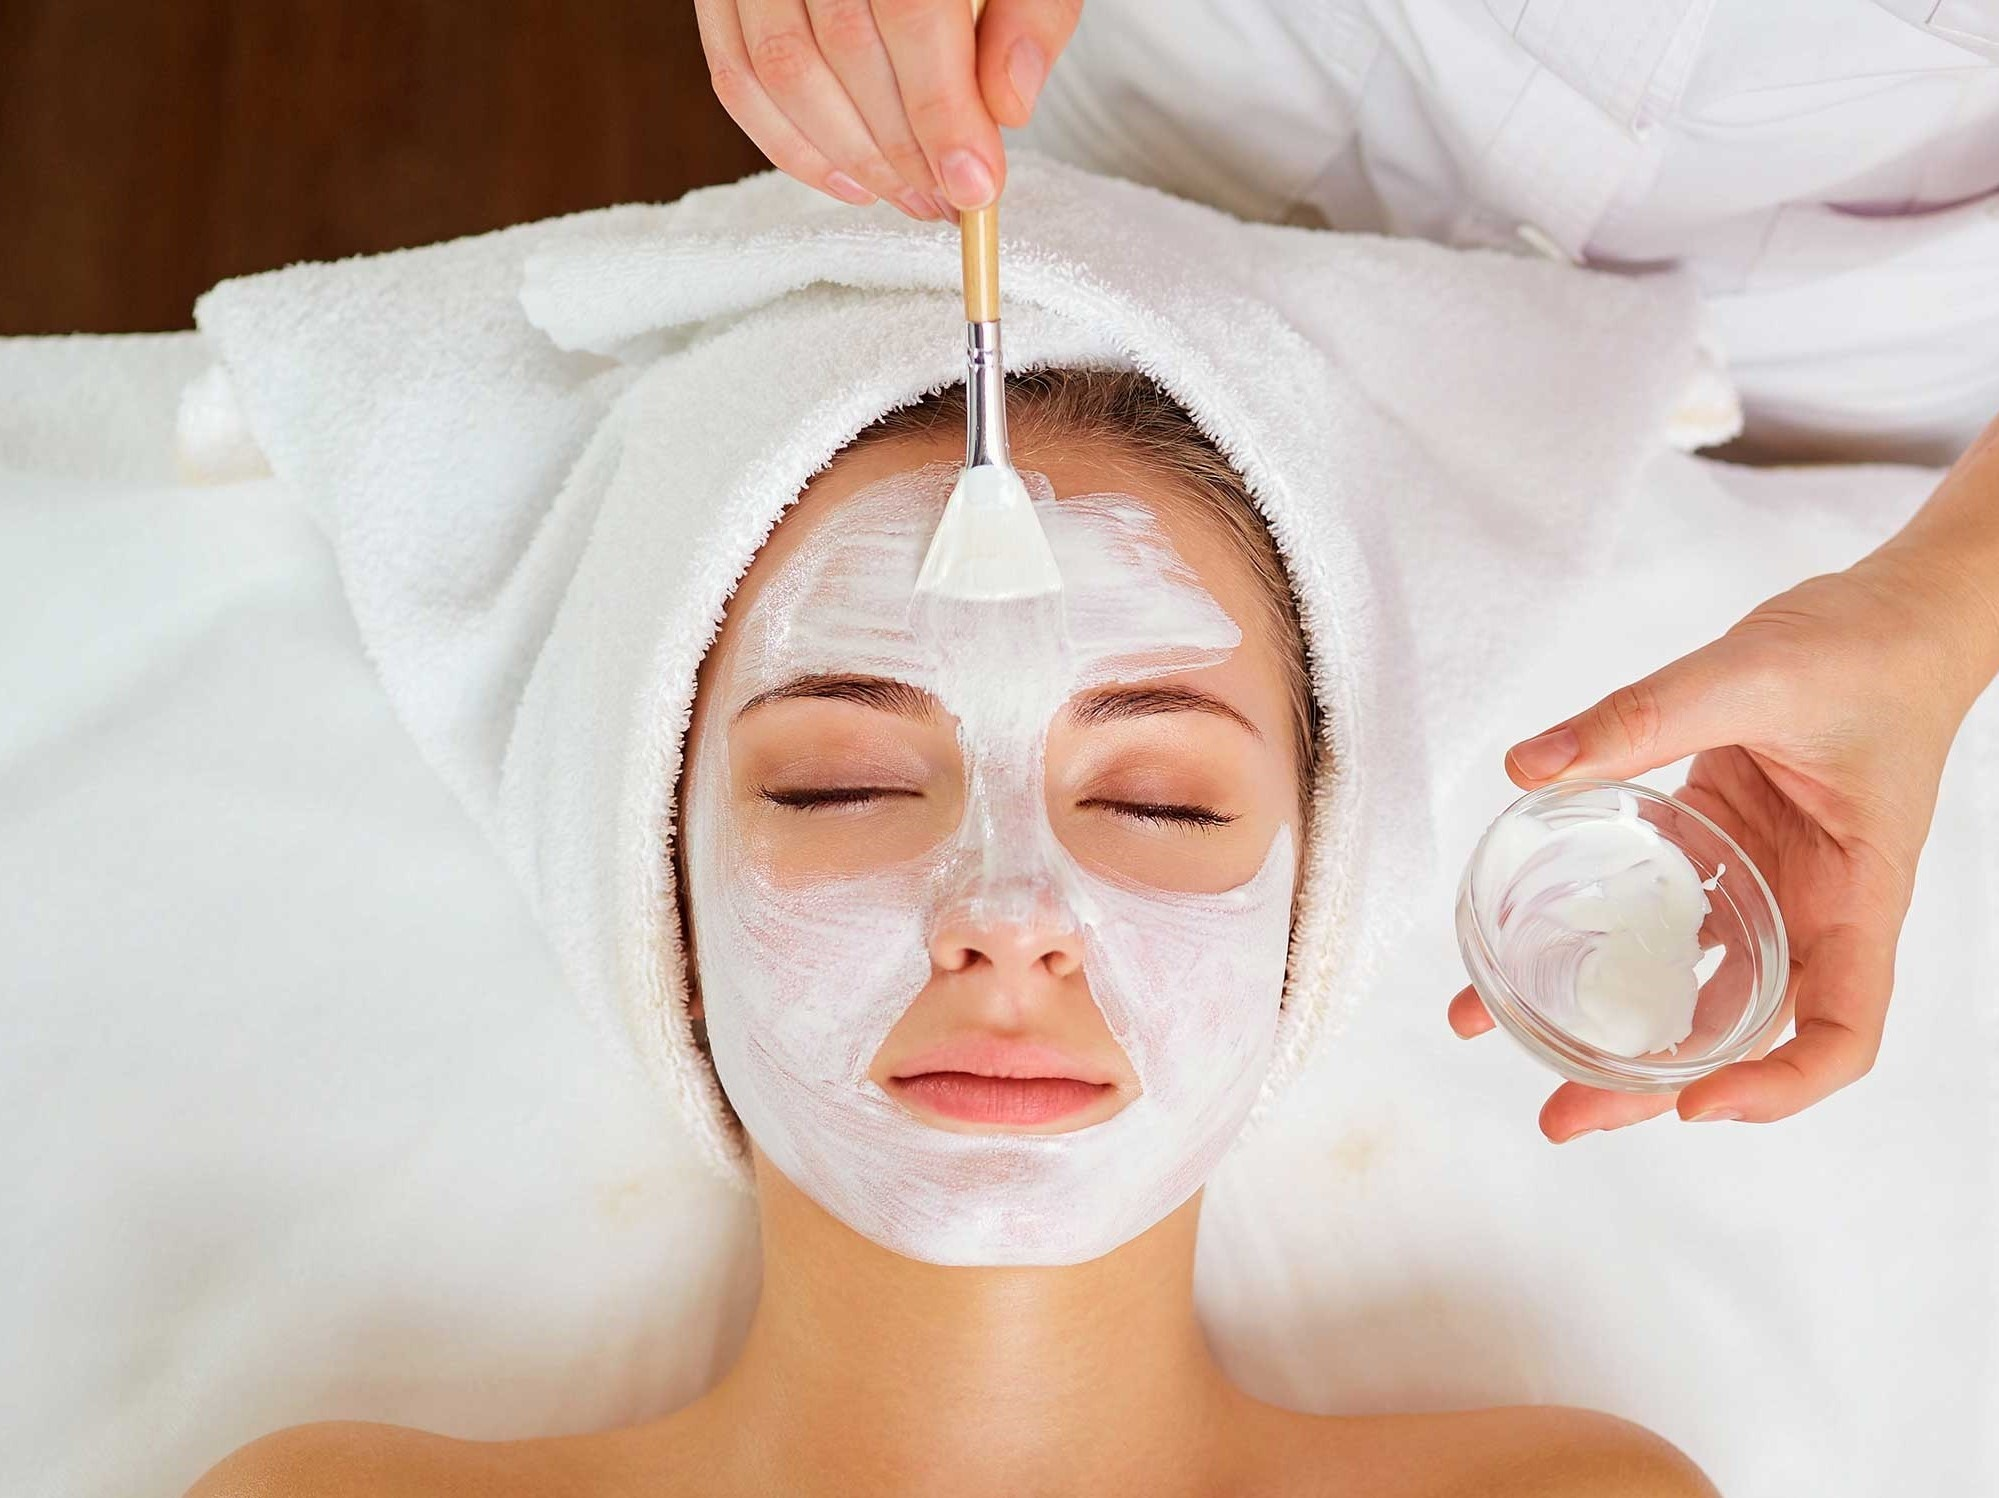 Facial treatment in Omaha, NE